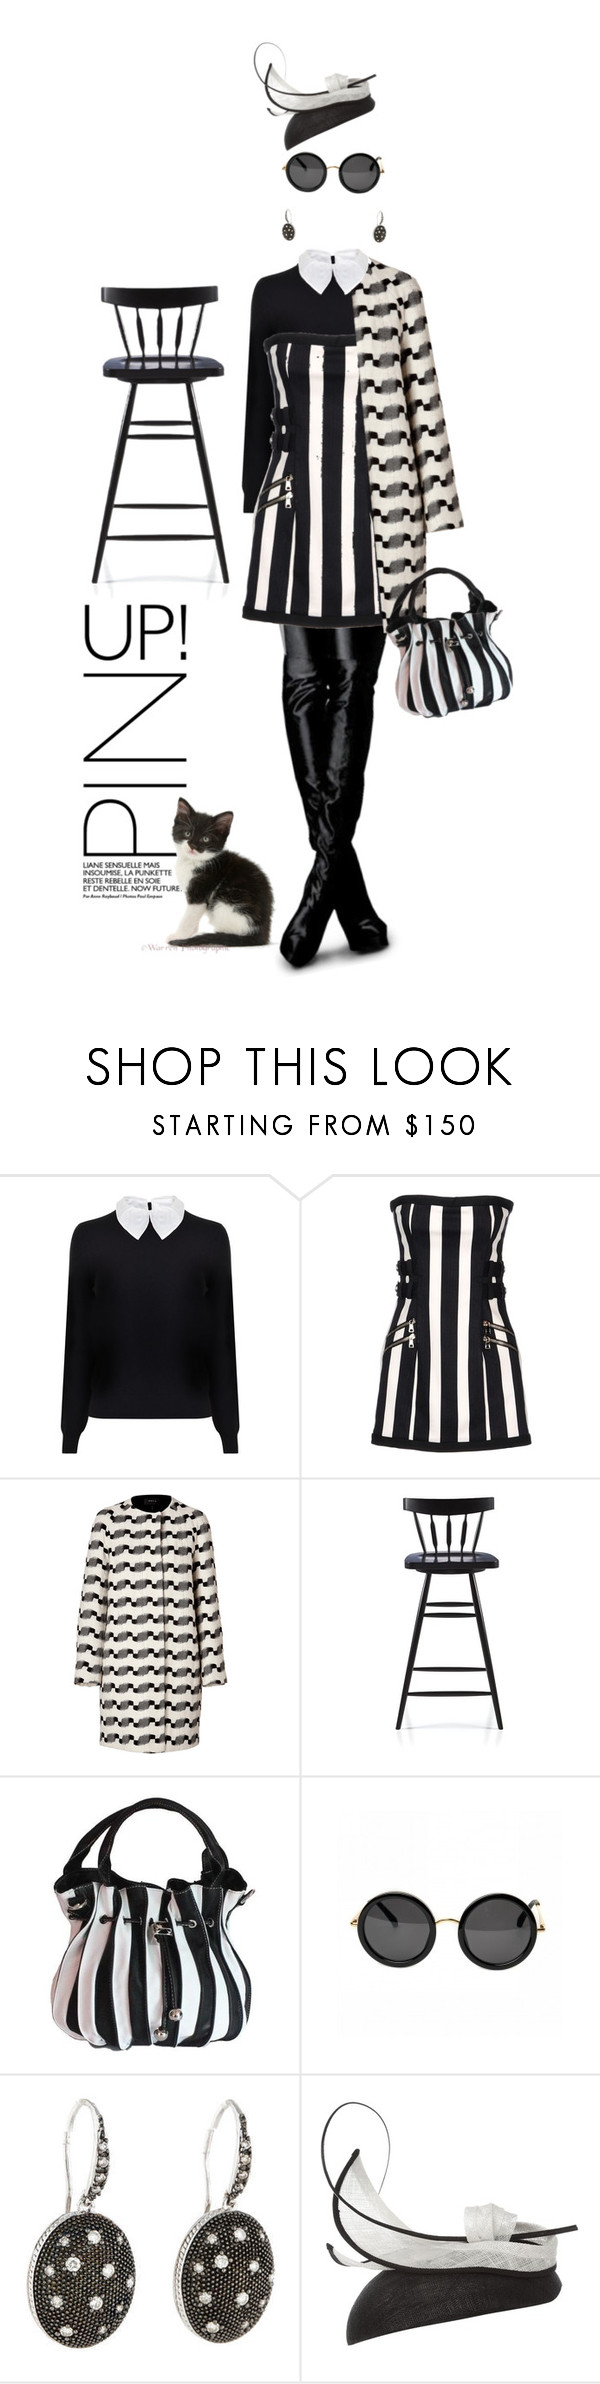 """Stripe trip"" by pensivepeacock ❤ liked on Polyvore featuring Carven, Balmain, Akris, Crate and Barrel and Suzanne Bettley"